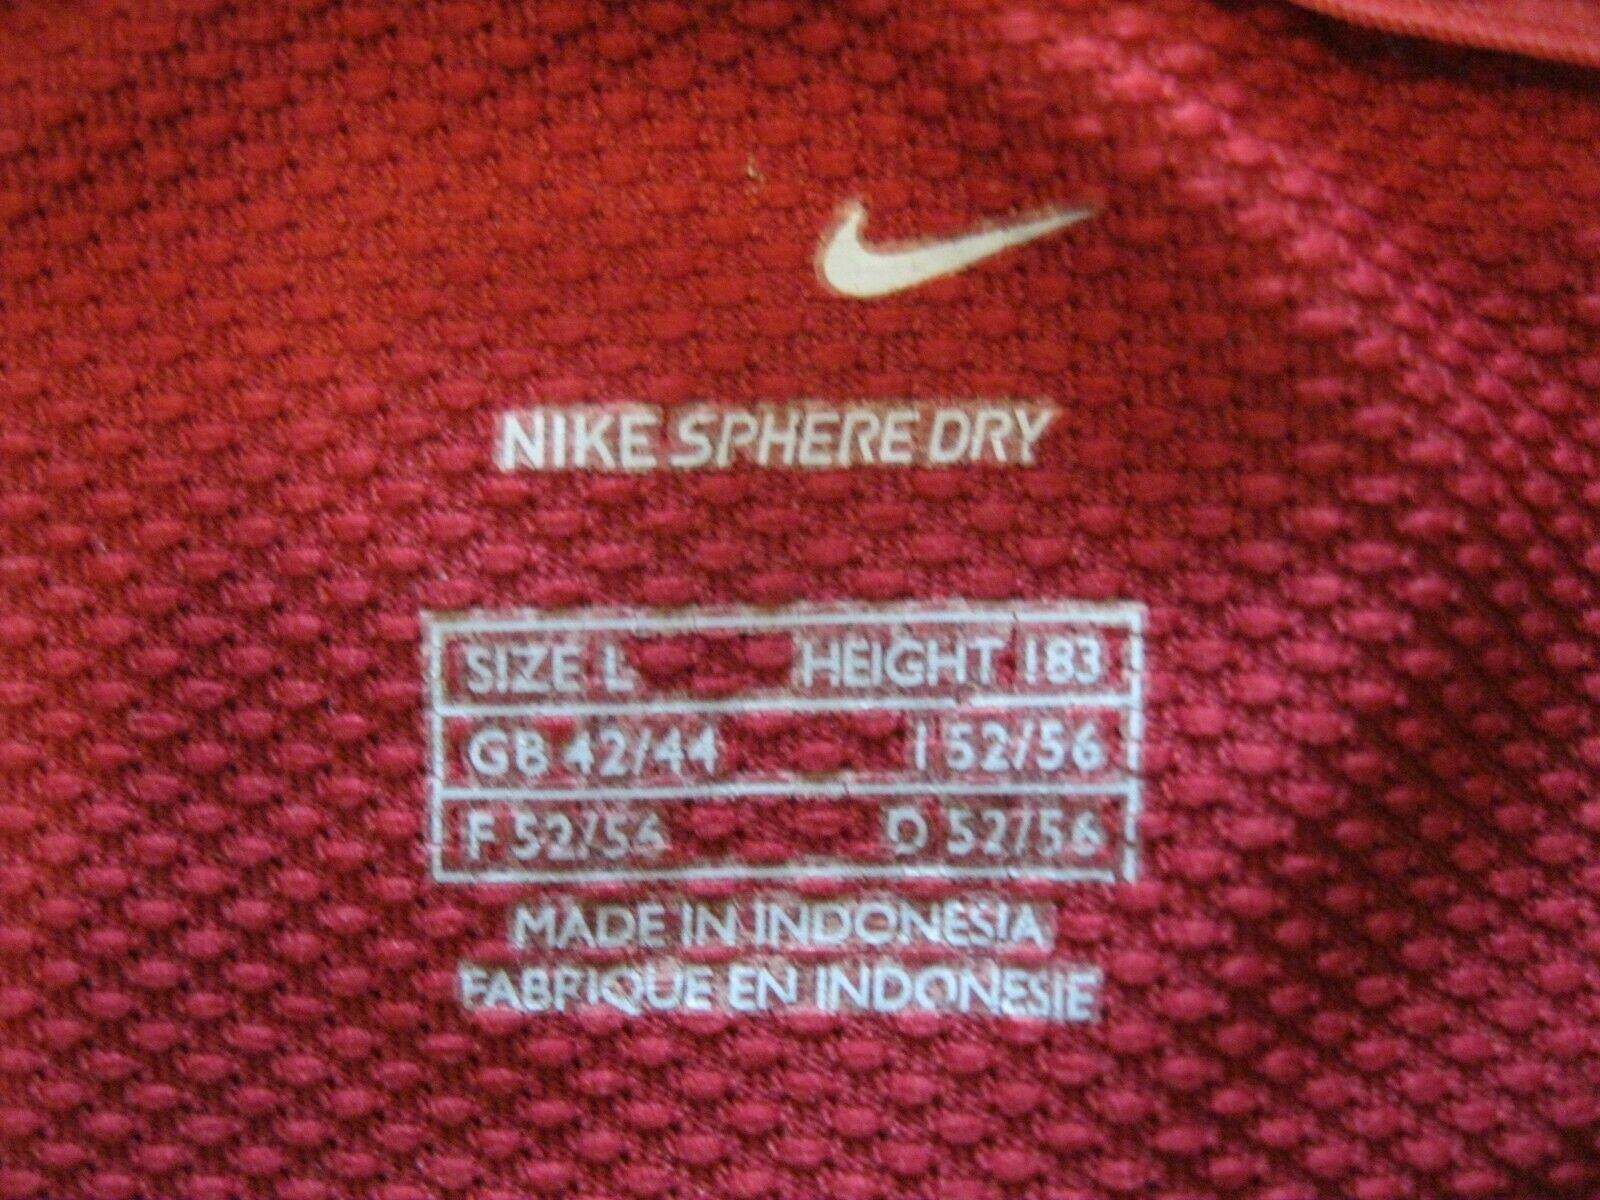 Portugal national team 2006/2008 Home Size L Nike u6sys jersey